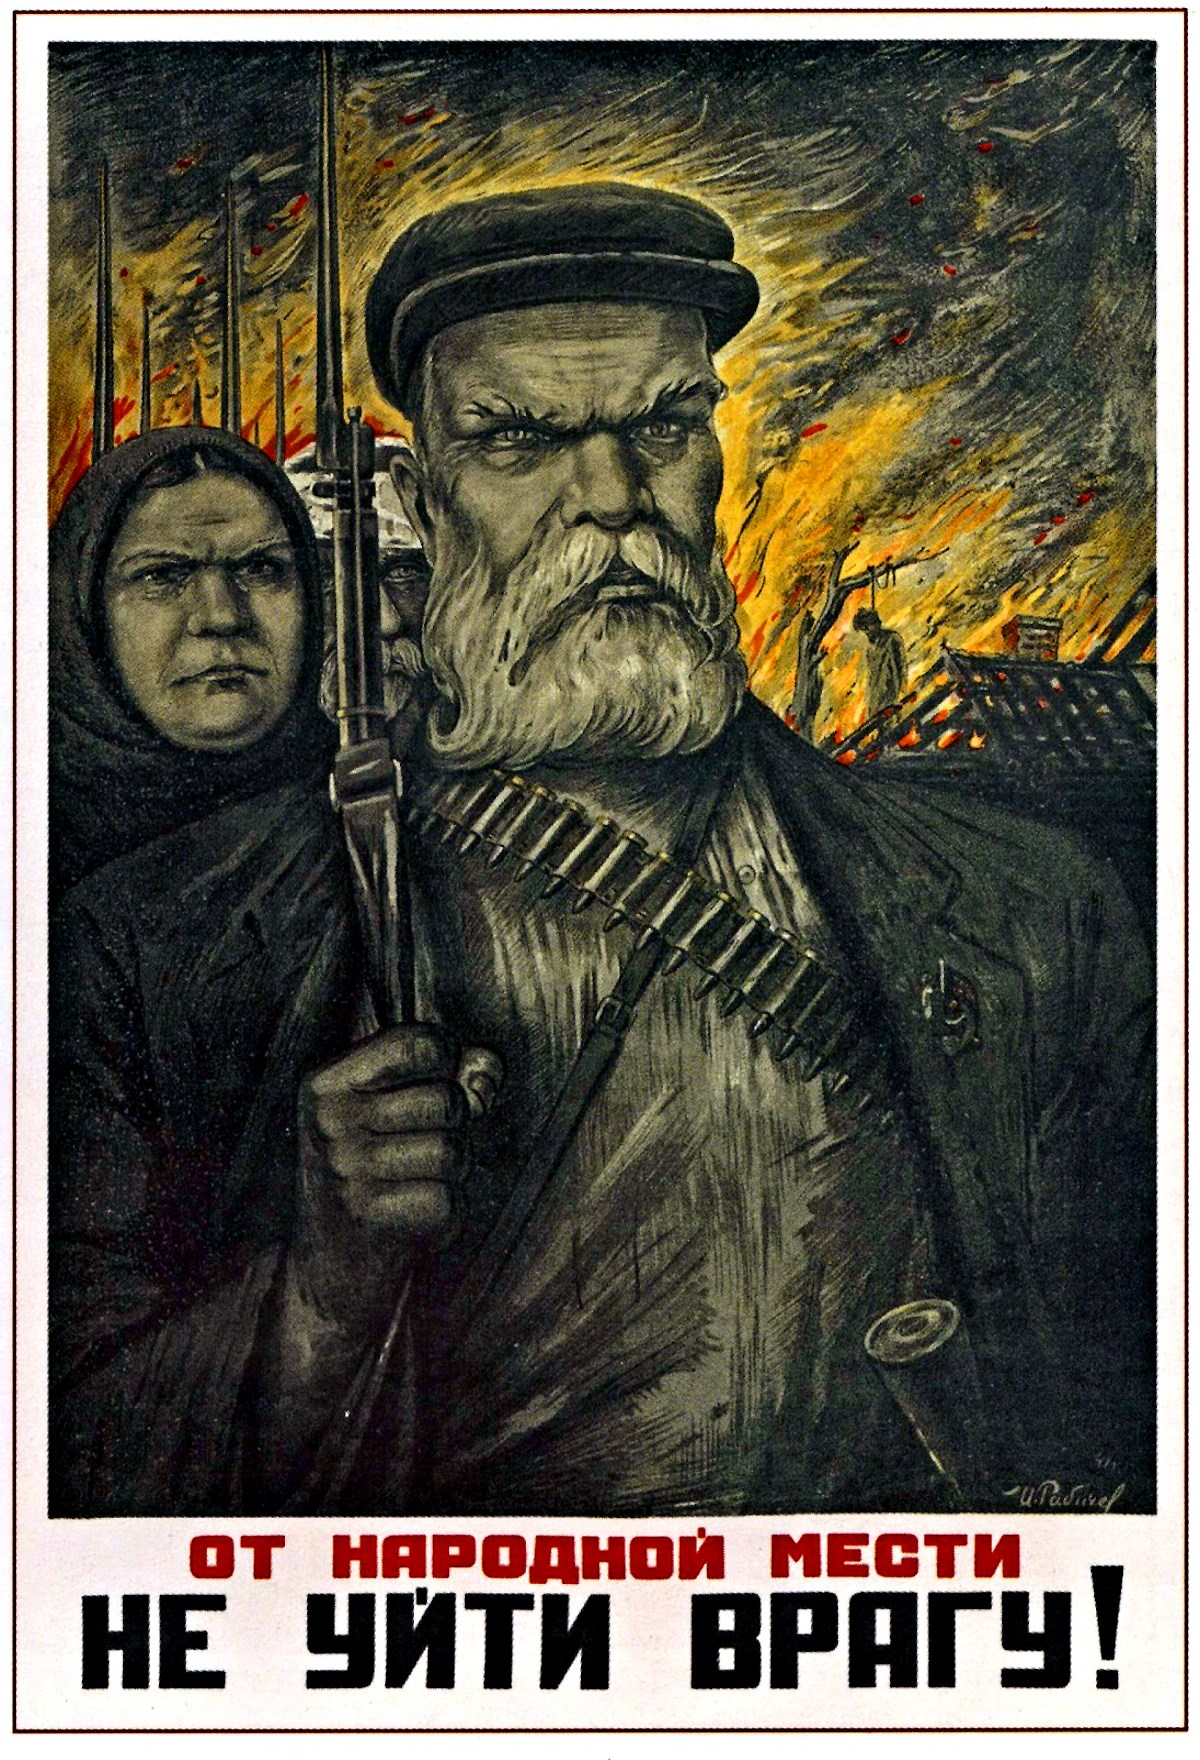 The Foe Won't Escape the People's Vengeance! Isaak Rabichev, 1941 (Click to enlarge)